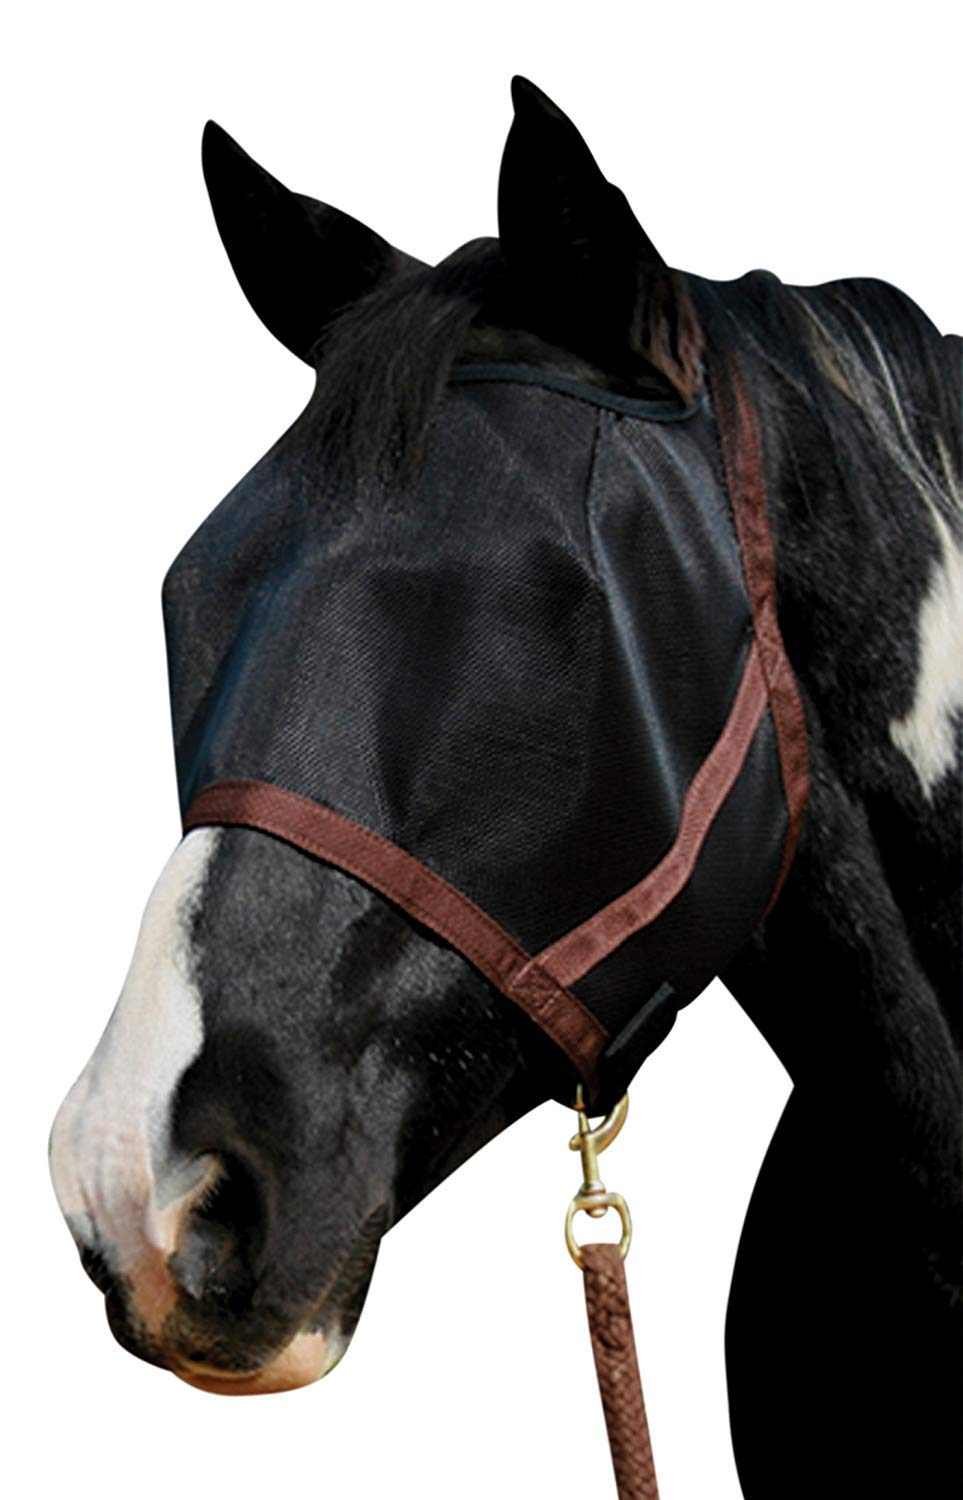 Kensington Natural Look CatchMask Horse Fly Mask - Innovative Combination Fly Mask and Catch Halter with Double Locking Lead Rope Fastener - 2 Sizes (Black, Medium) by Kensington Protective Products